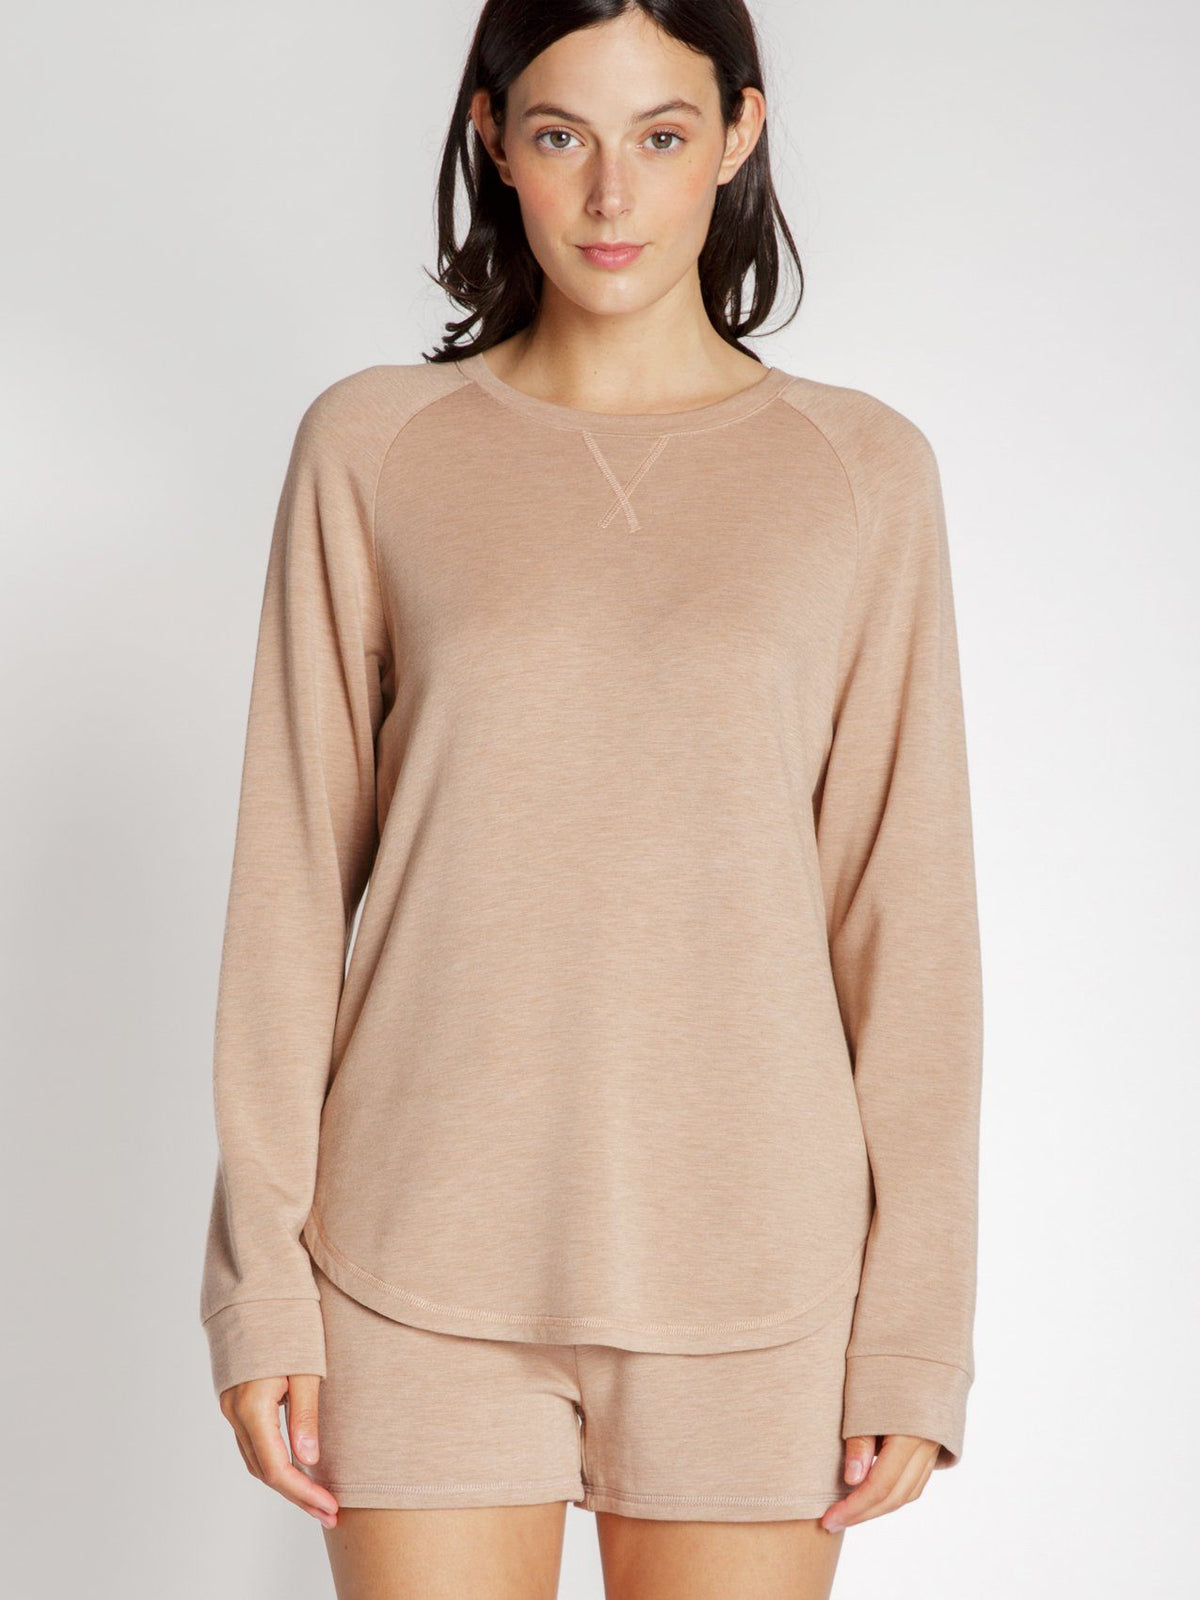 Feel at Home Sweatshirt Unclassified Thread&Supply Brown Sugar S